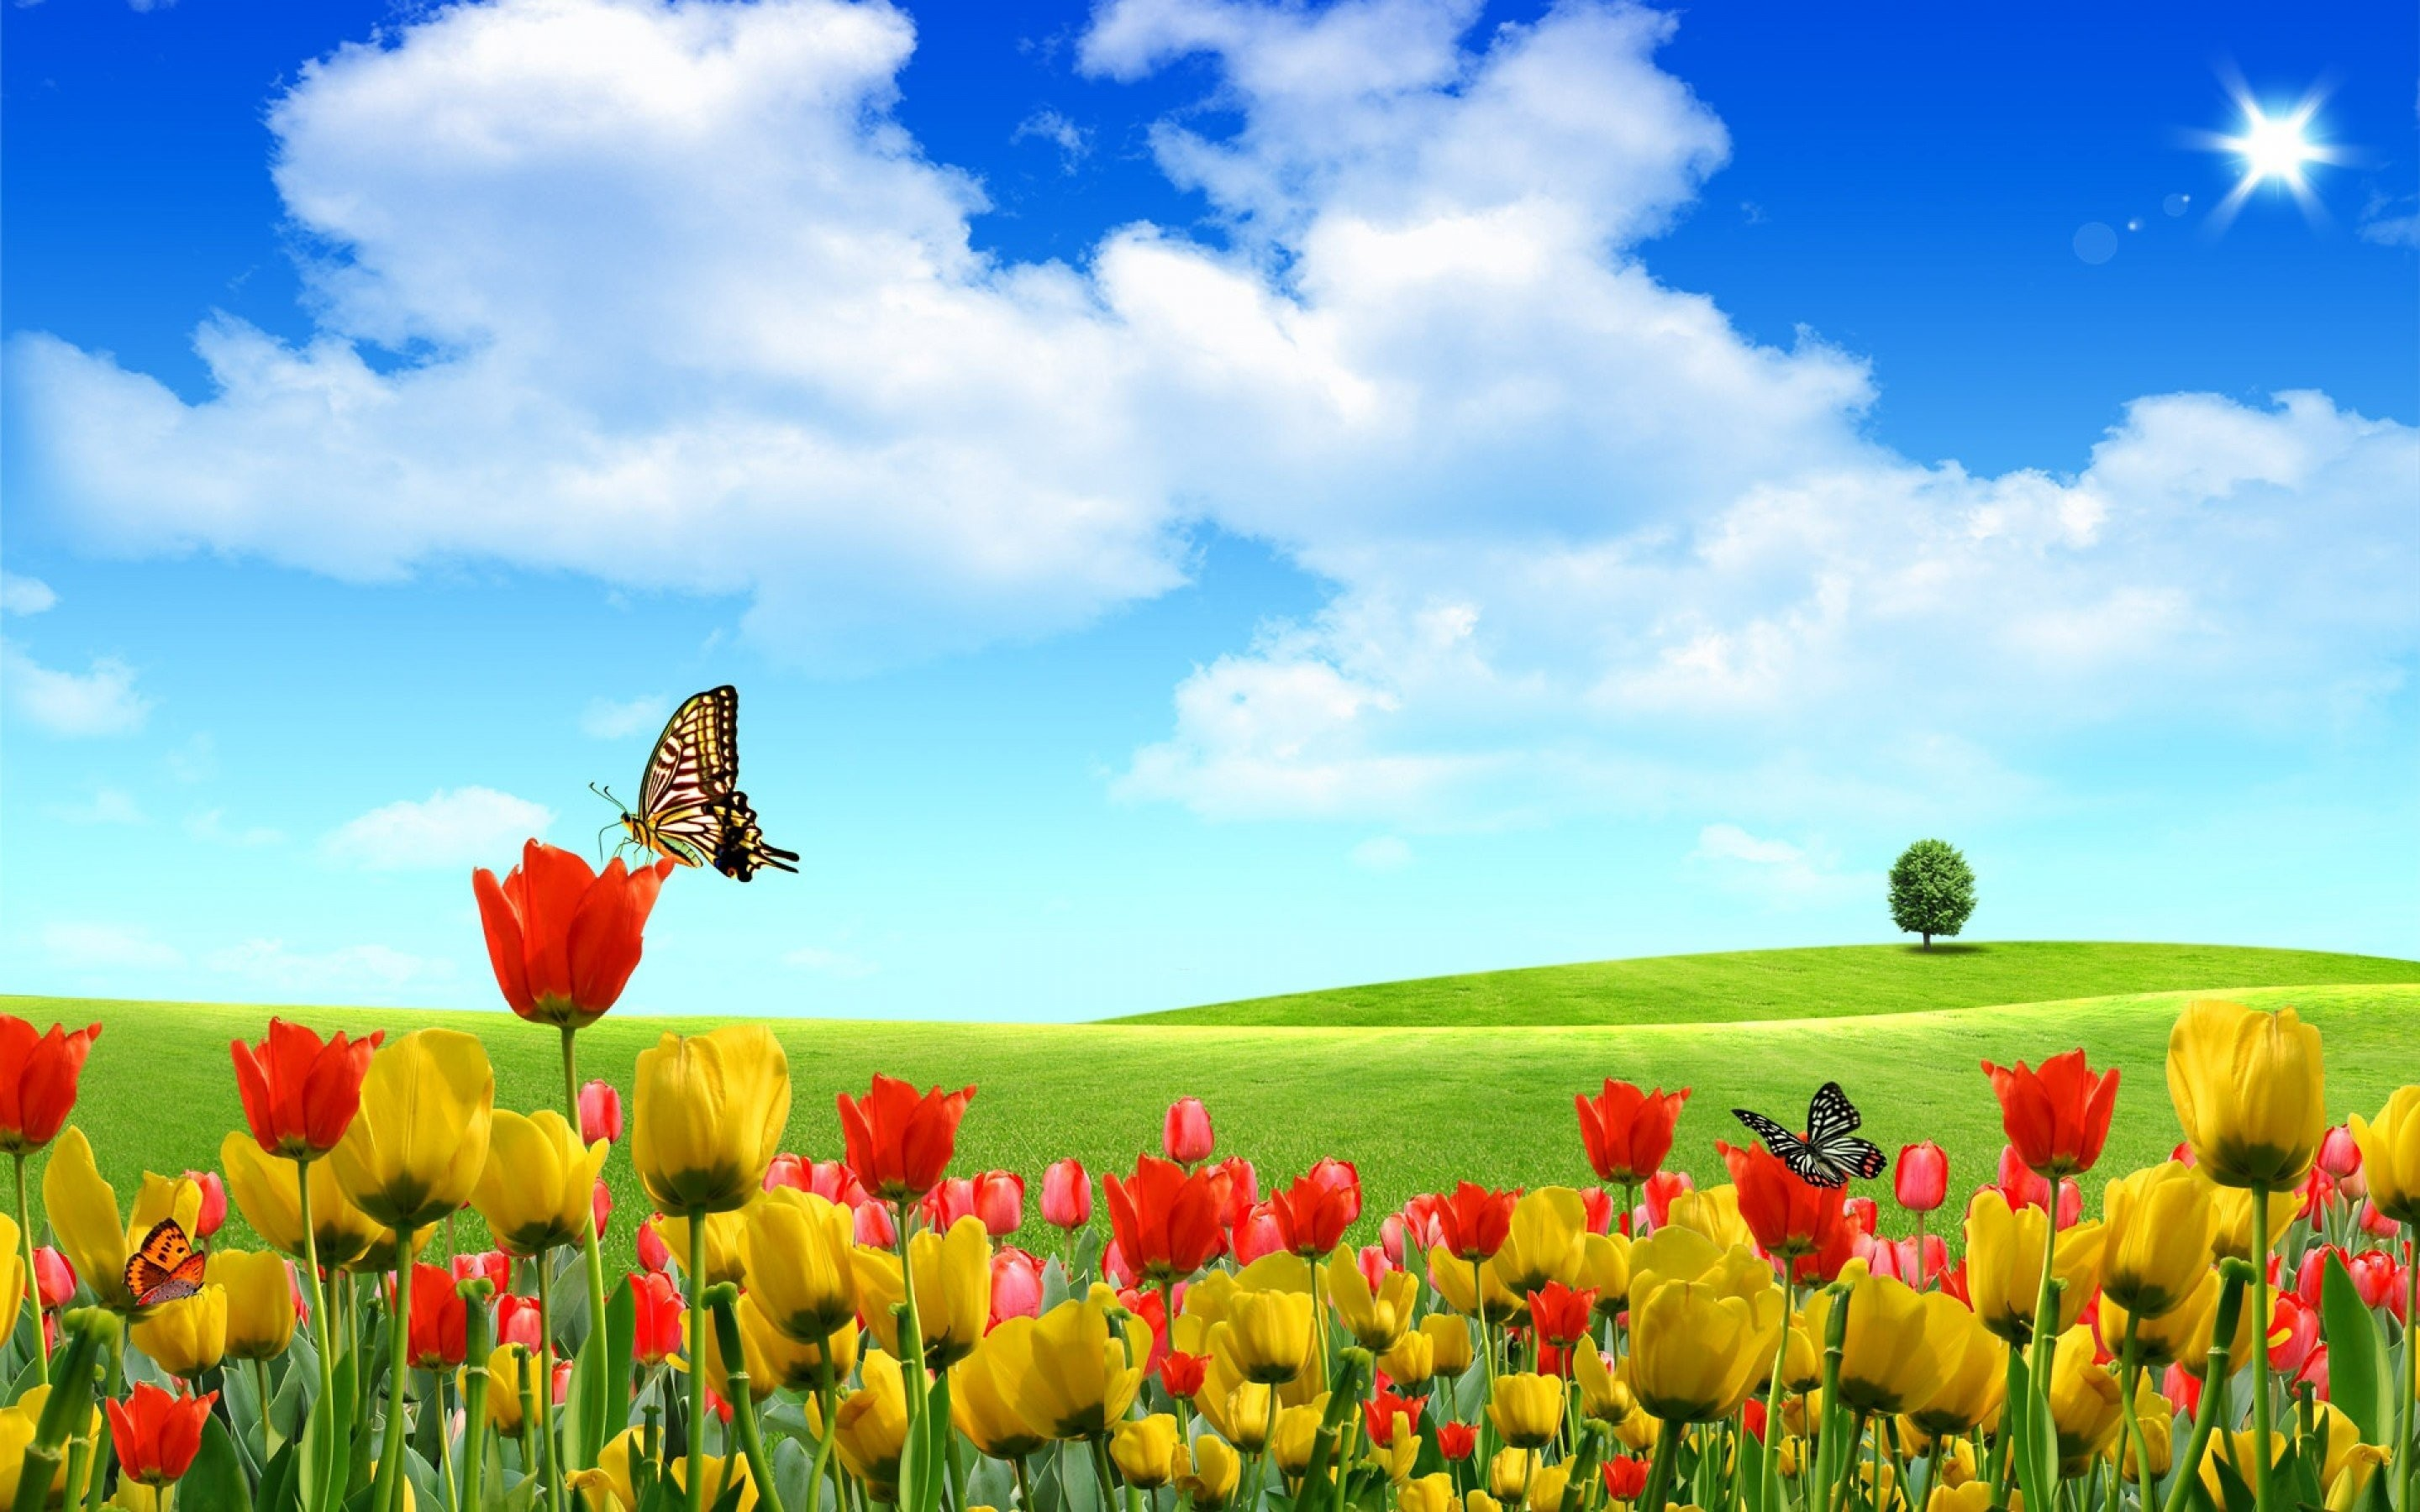 Res: 2880x1800, Tulip Flowers Background Wallpaper